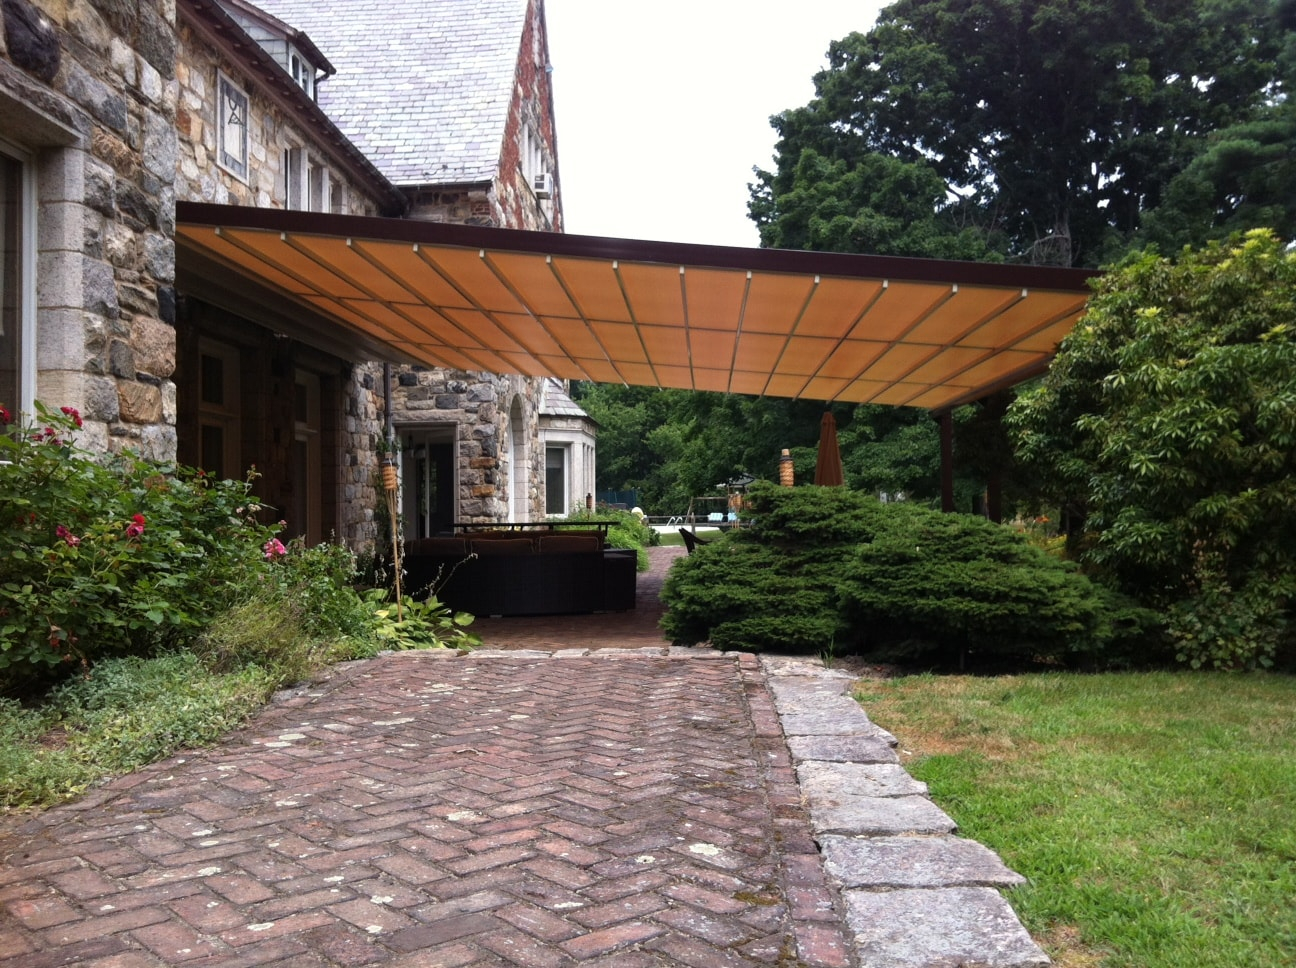 7 Patio Cover Ideas For Your Backyard Retractableawnings for 12 Genius Concepts of How to Build Backyard Patio Roof Ideas